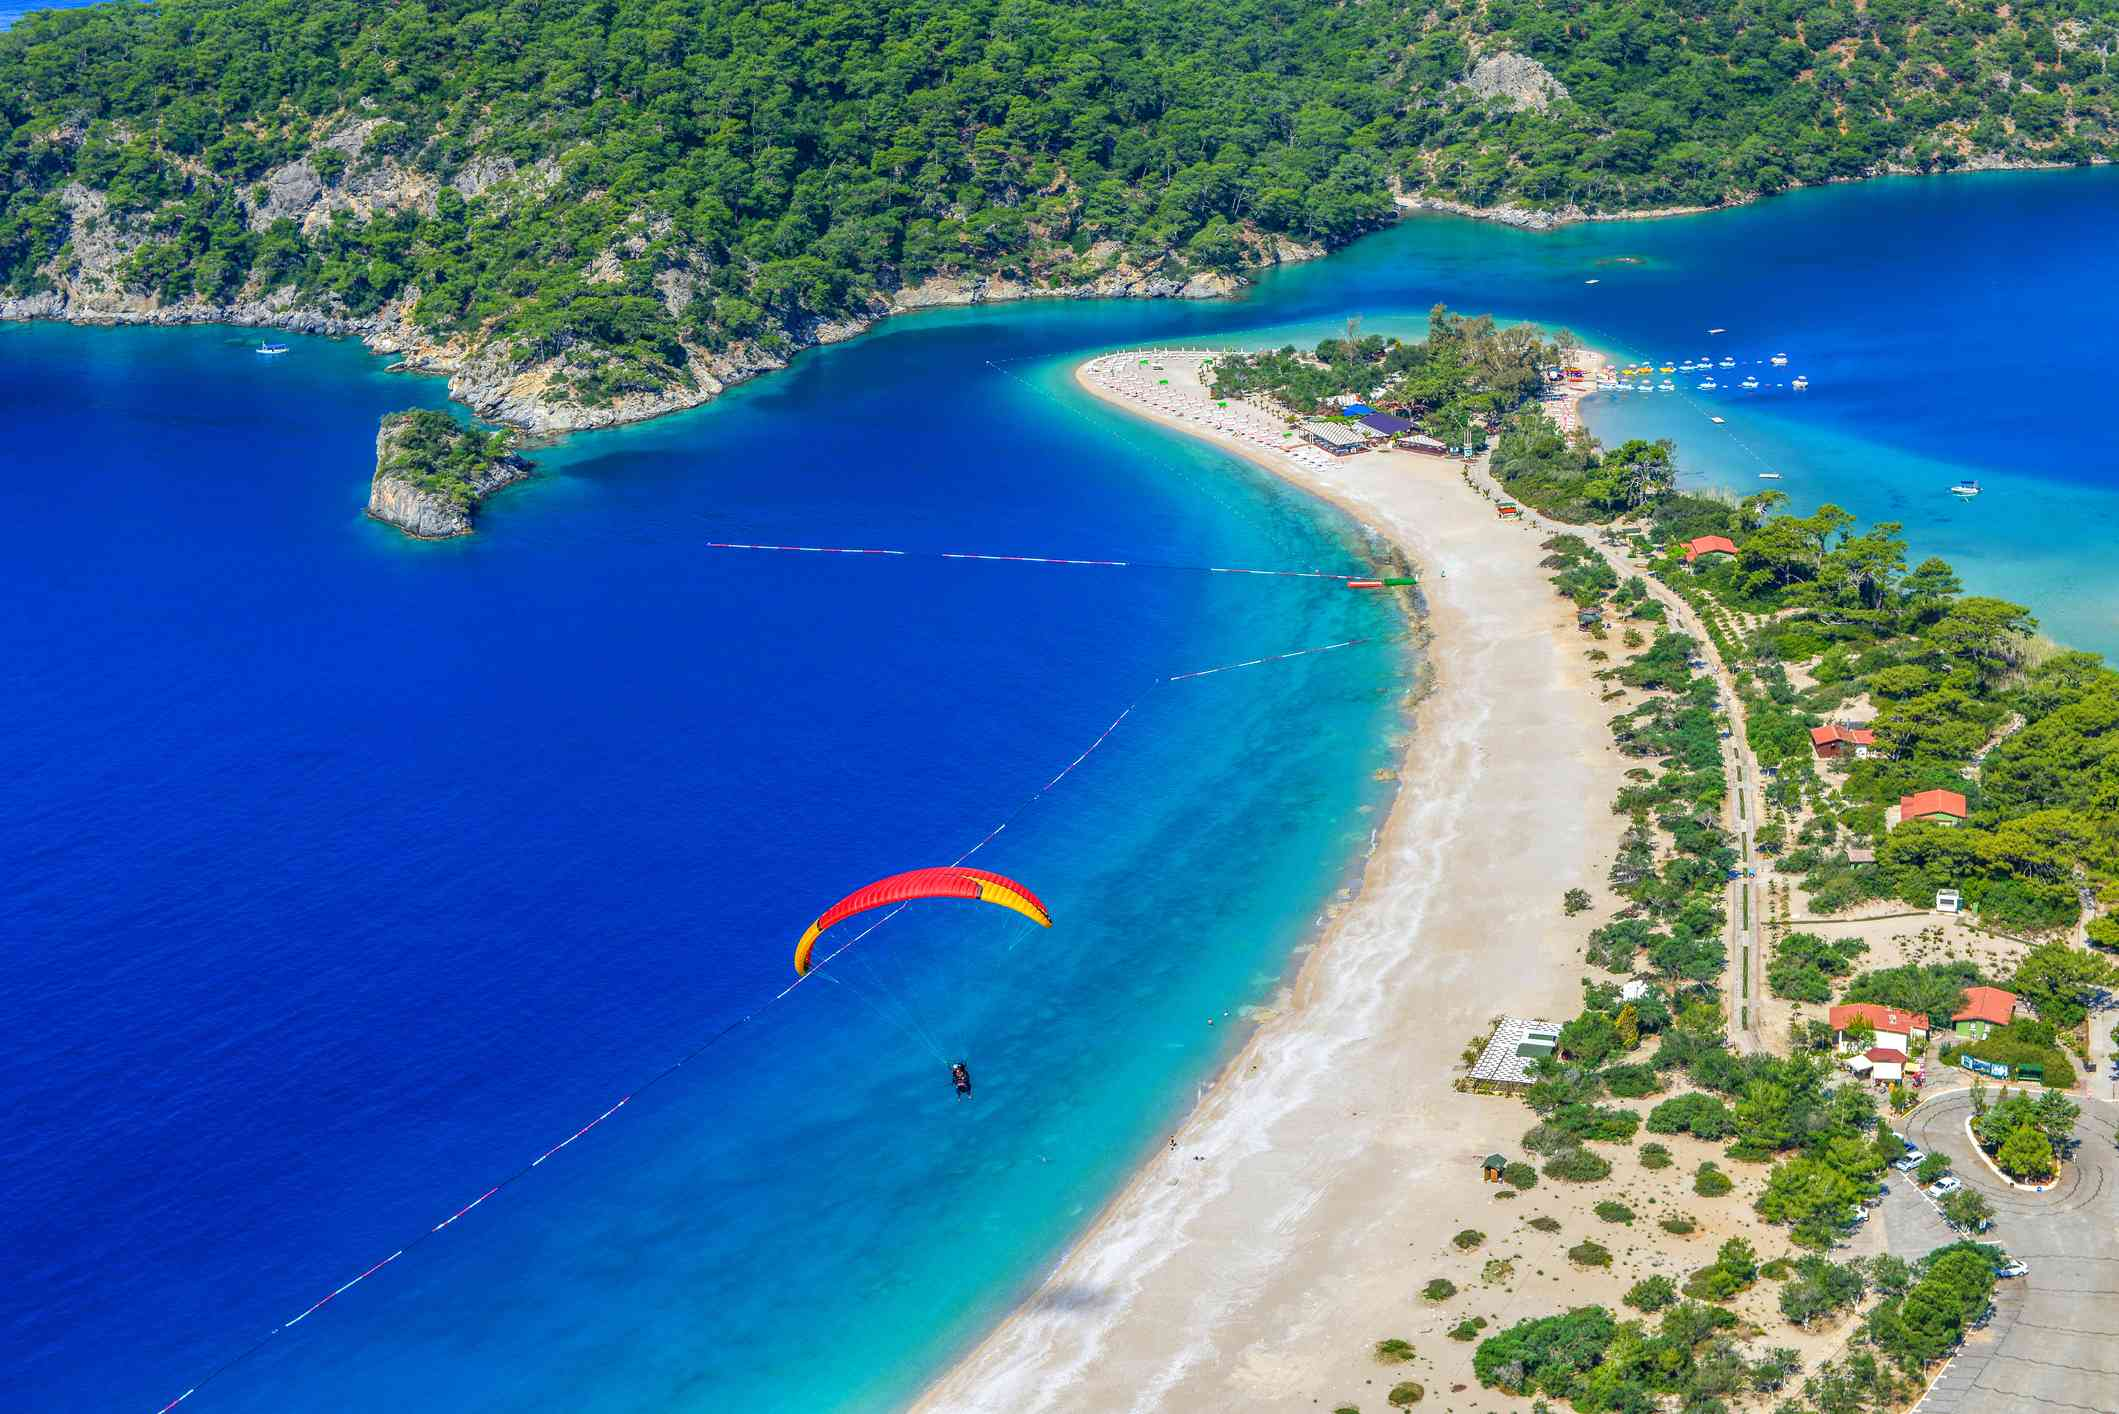 aerial shot of bright blue sea with a long white beach and a red paraglider in the sky